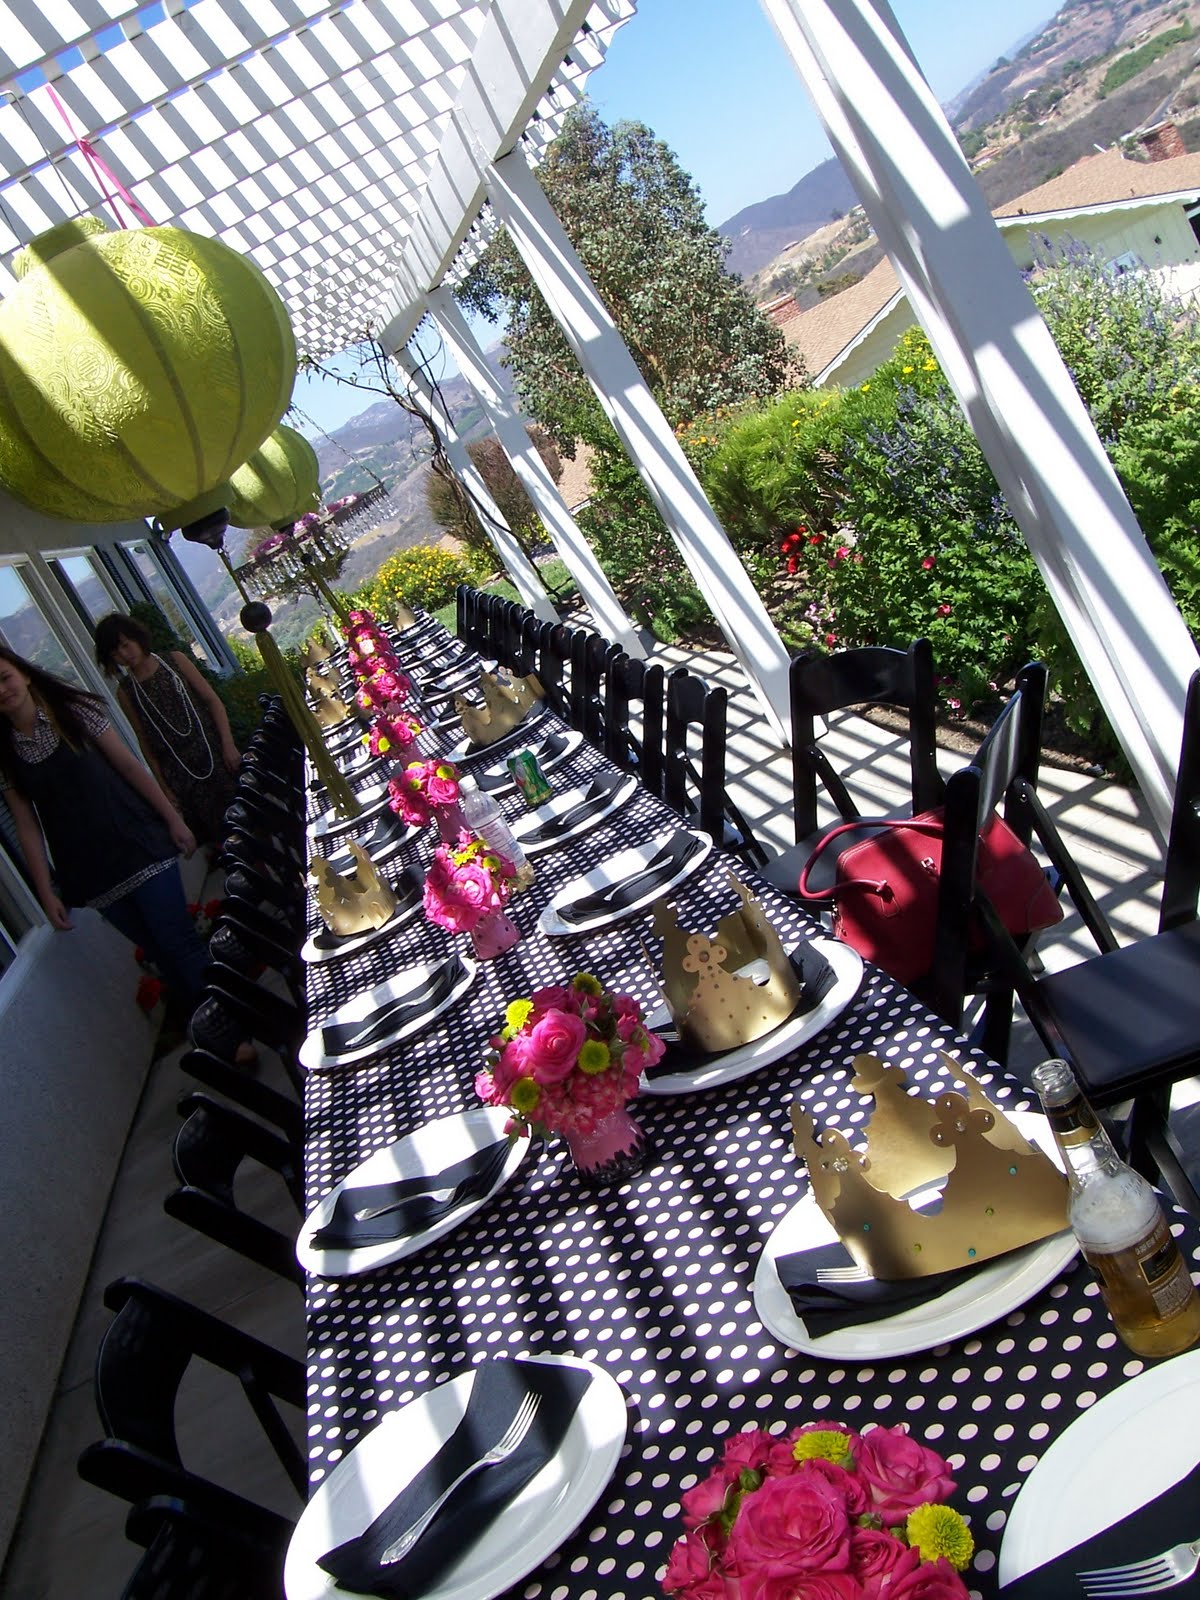 Amore bella designs outdoor brunch decor black white for Outdoor brunch decorating ideas